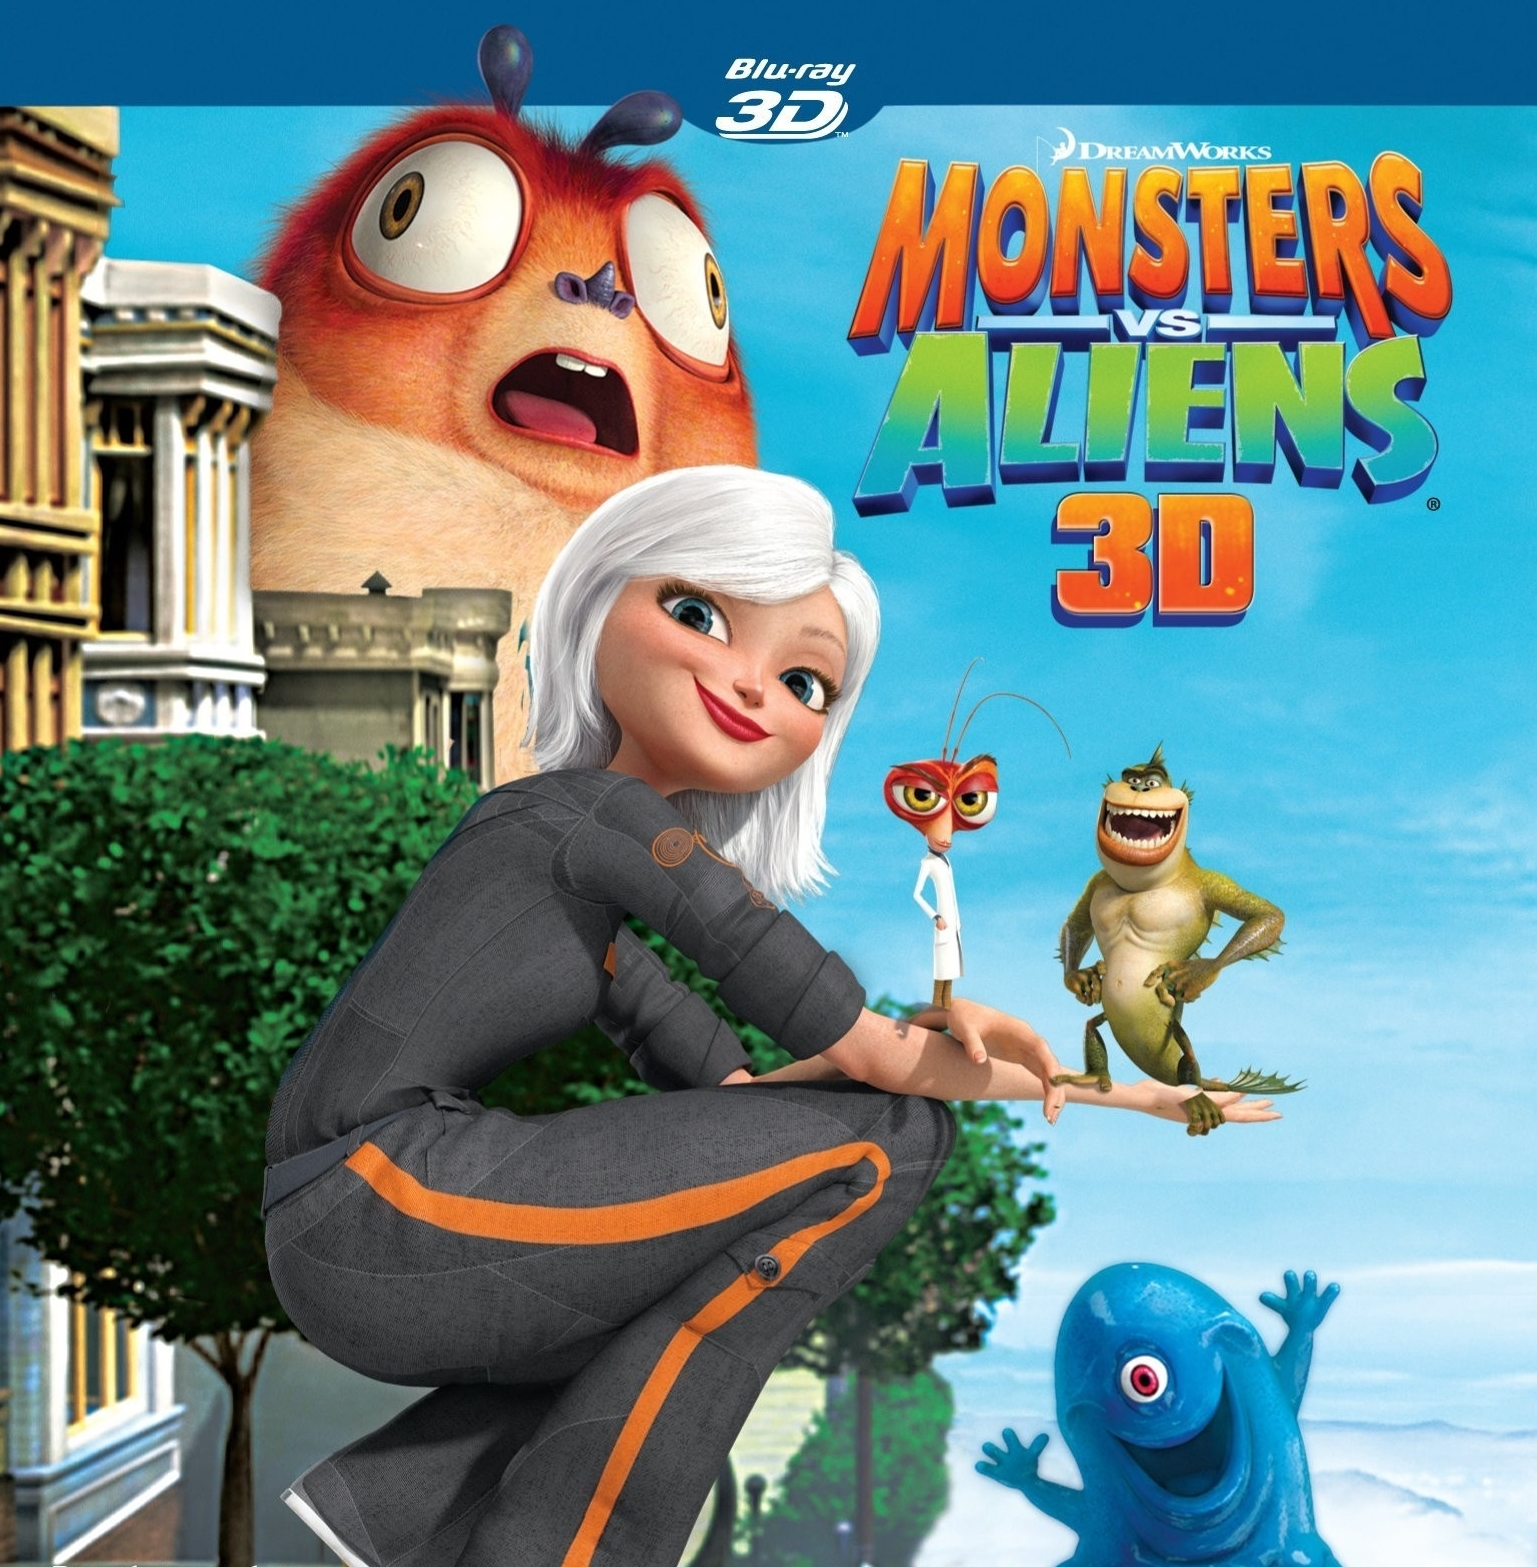 Monsters vs aliens pron nude image